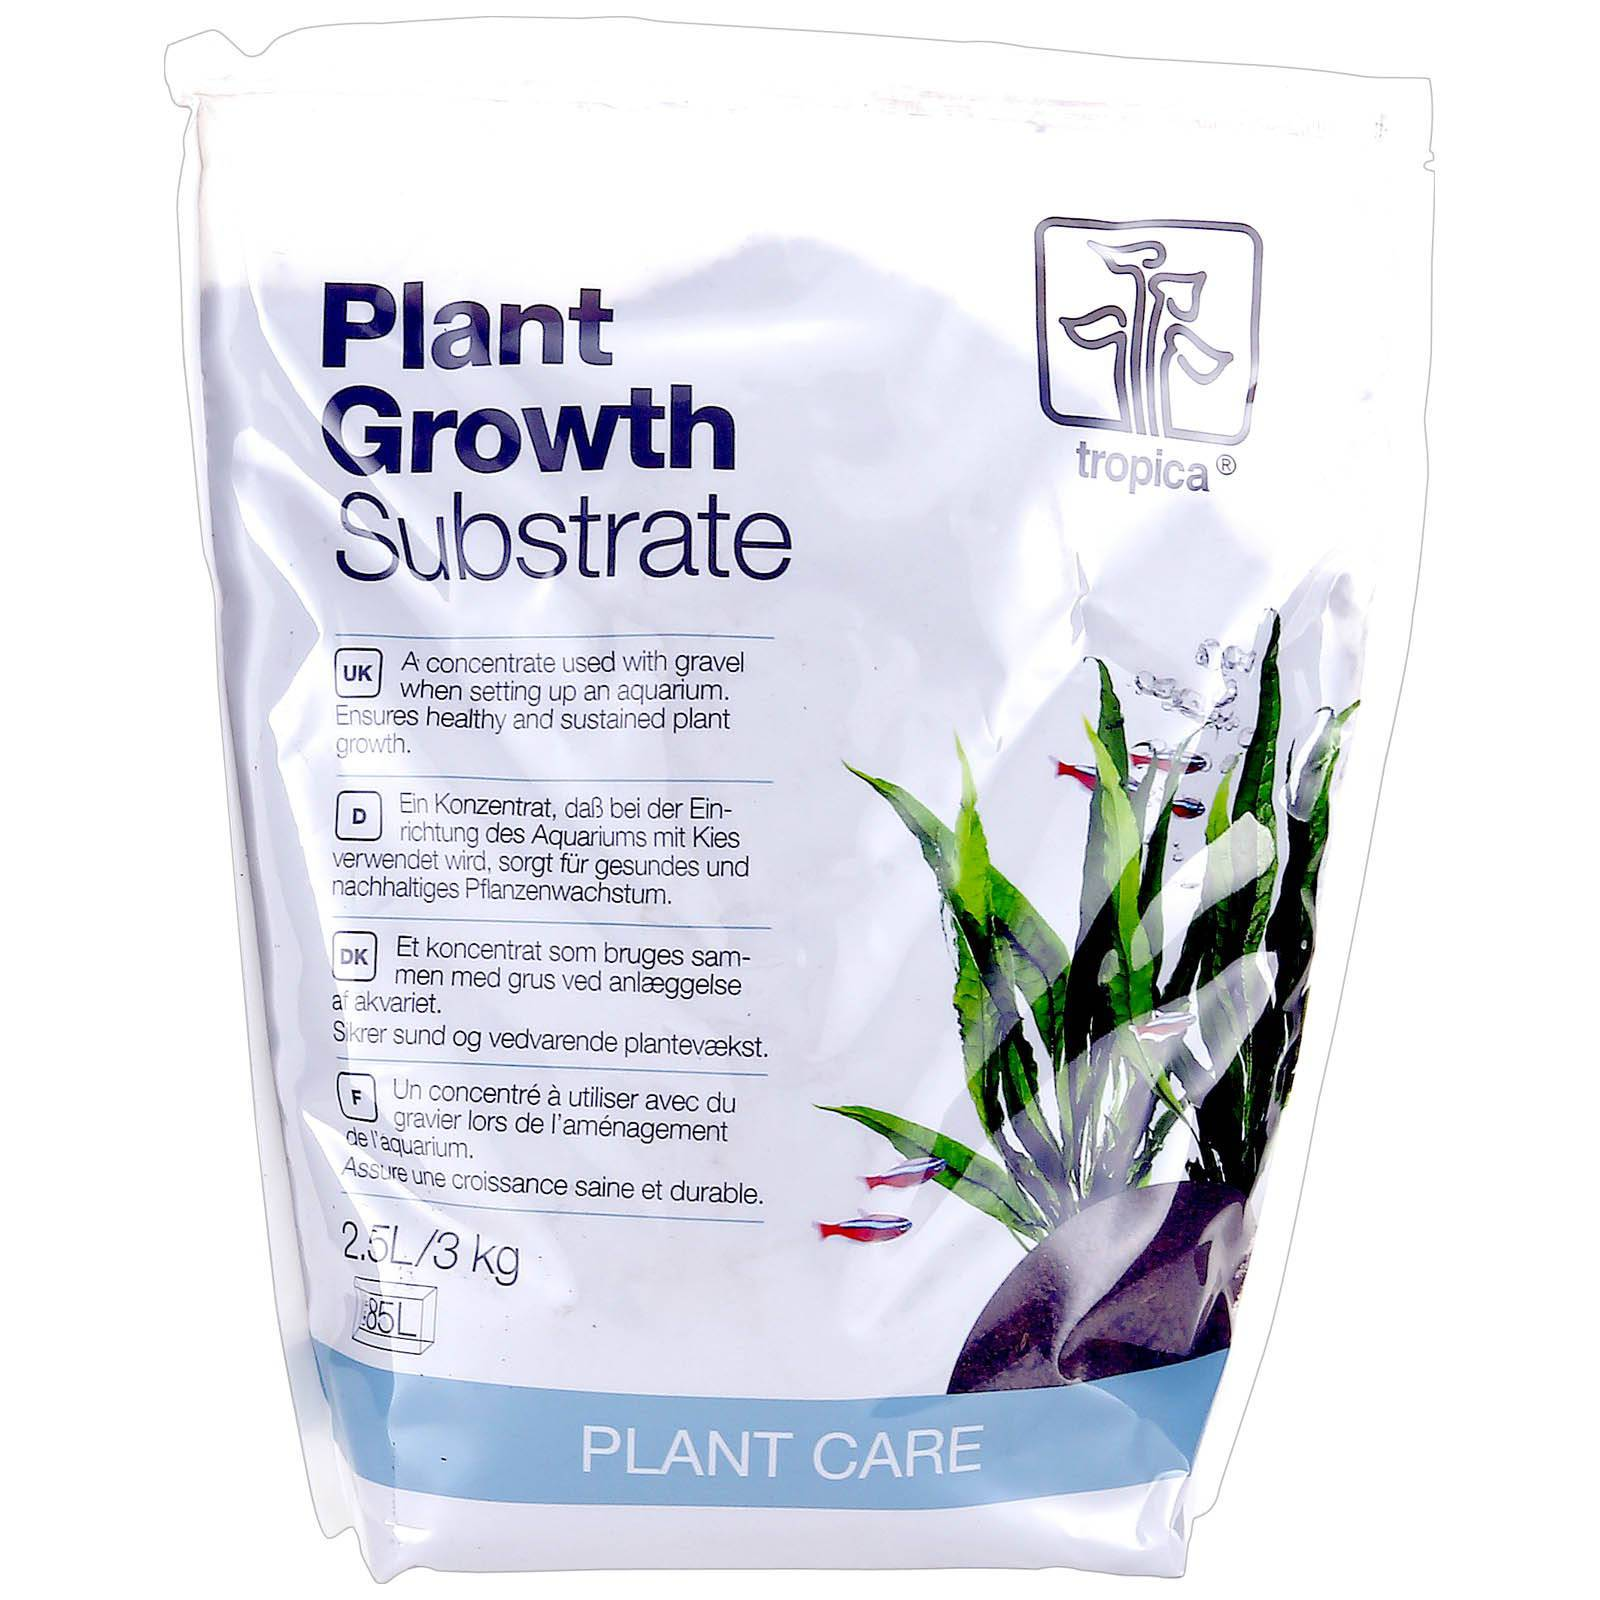 Tropica - Plant Growth Substrate - 2,5 l